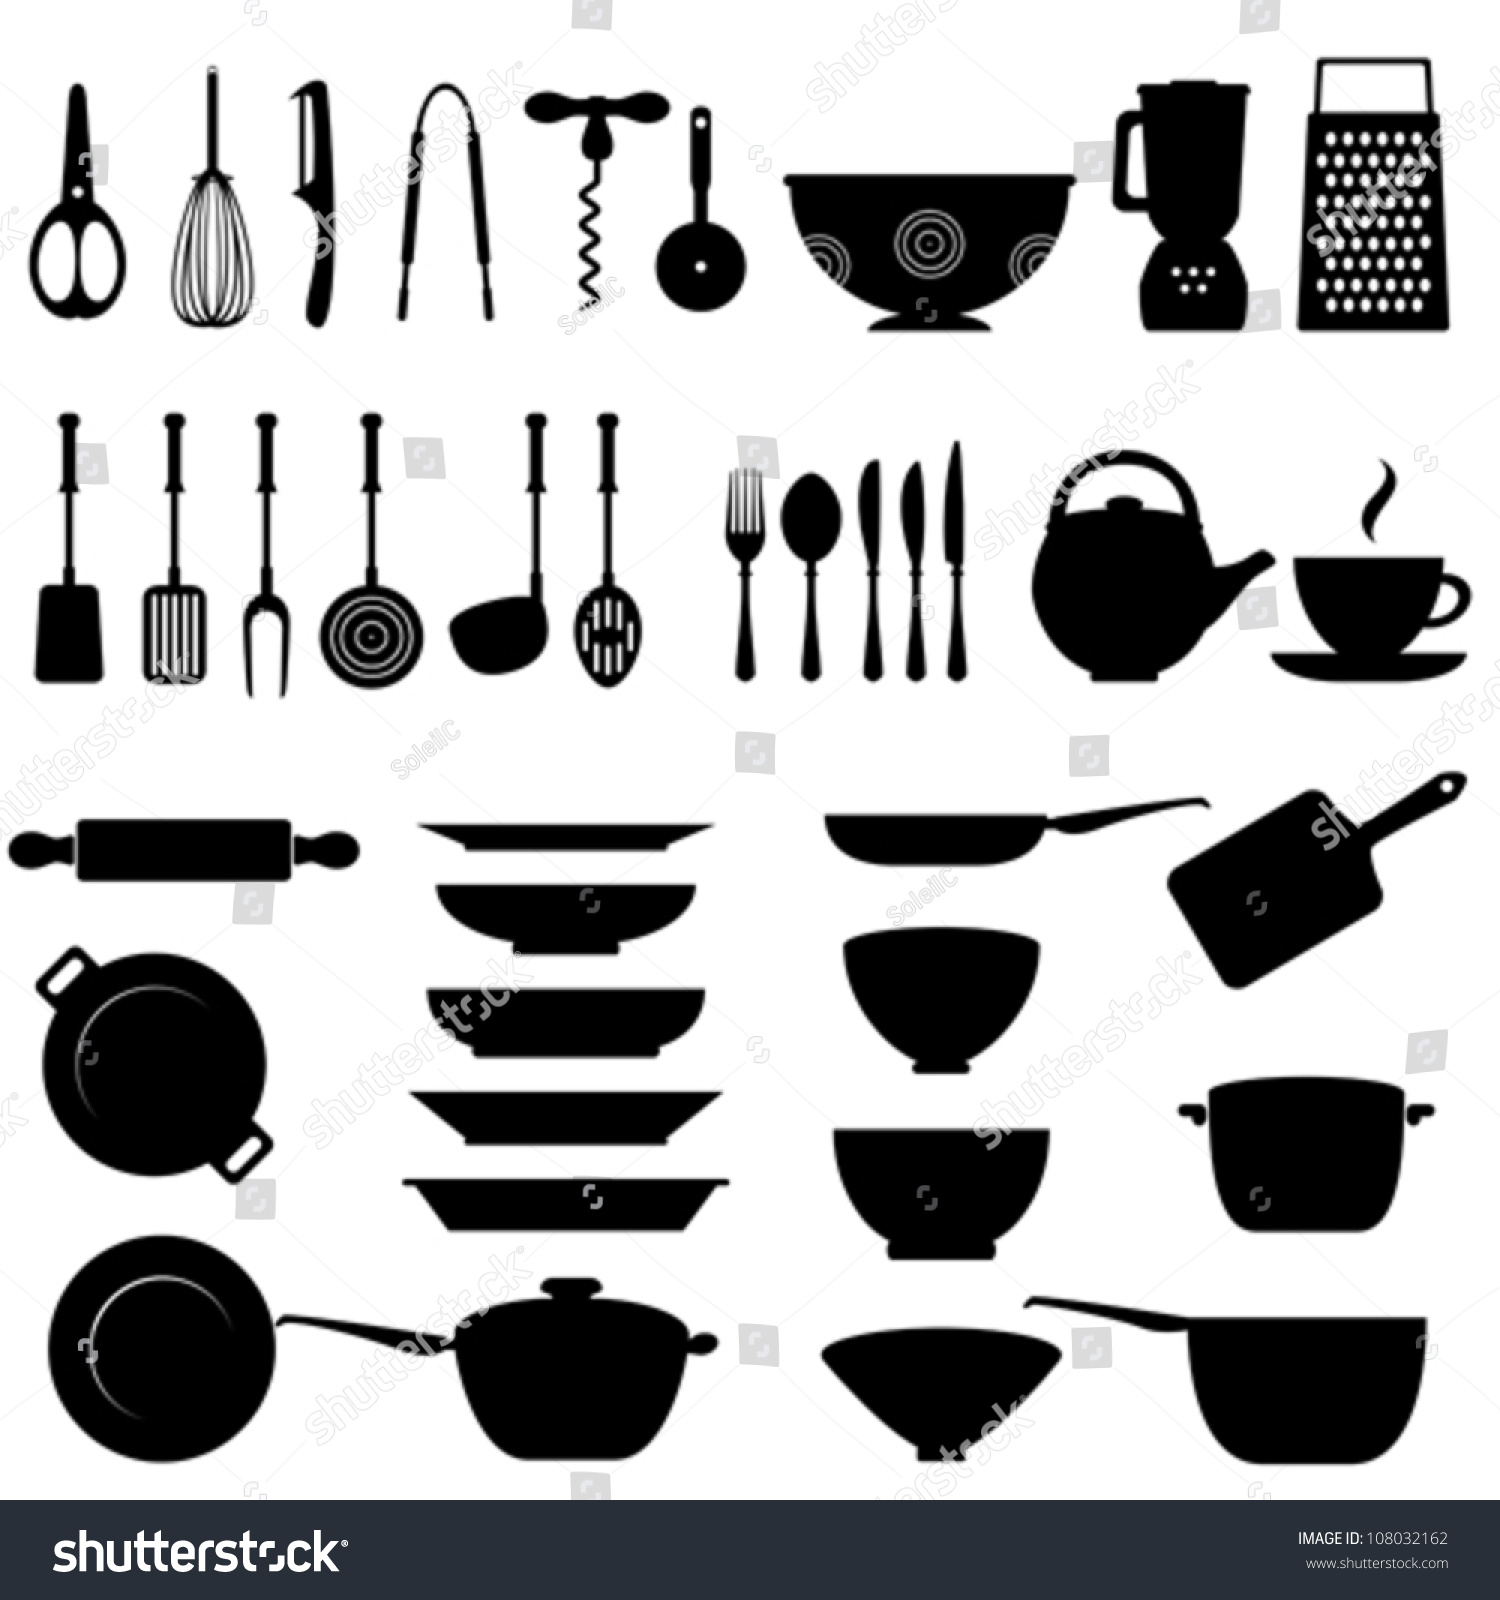 Kitchen utensils images - Kitchen Utensils And Tool Icon Set